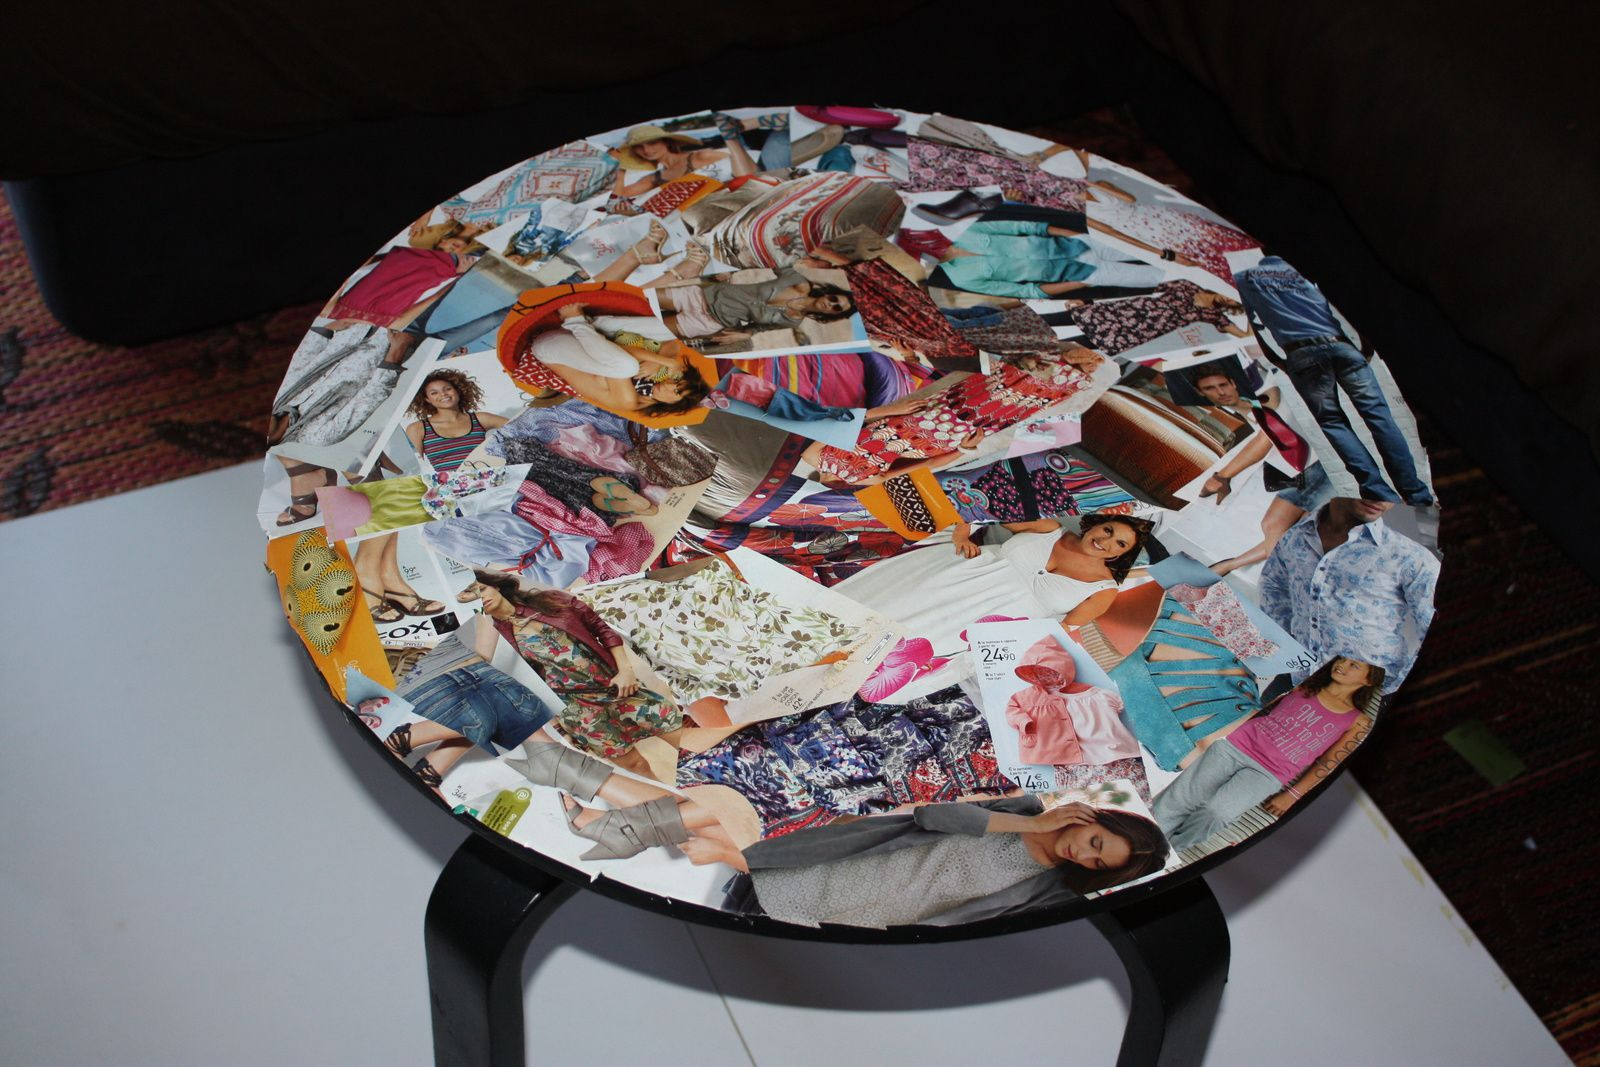 Customiser une vieille table basse - Customiser une table ...